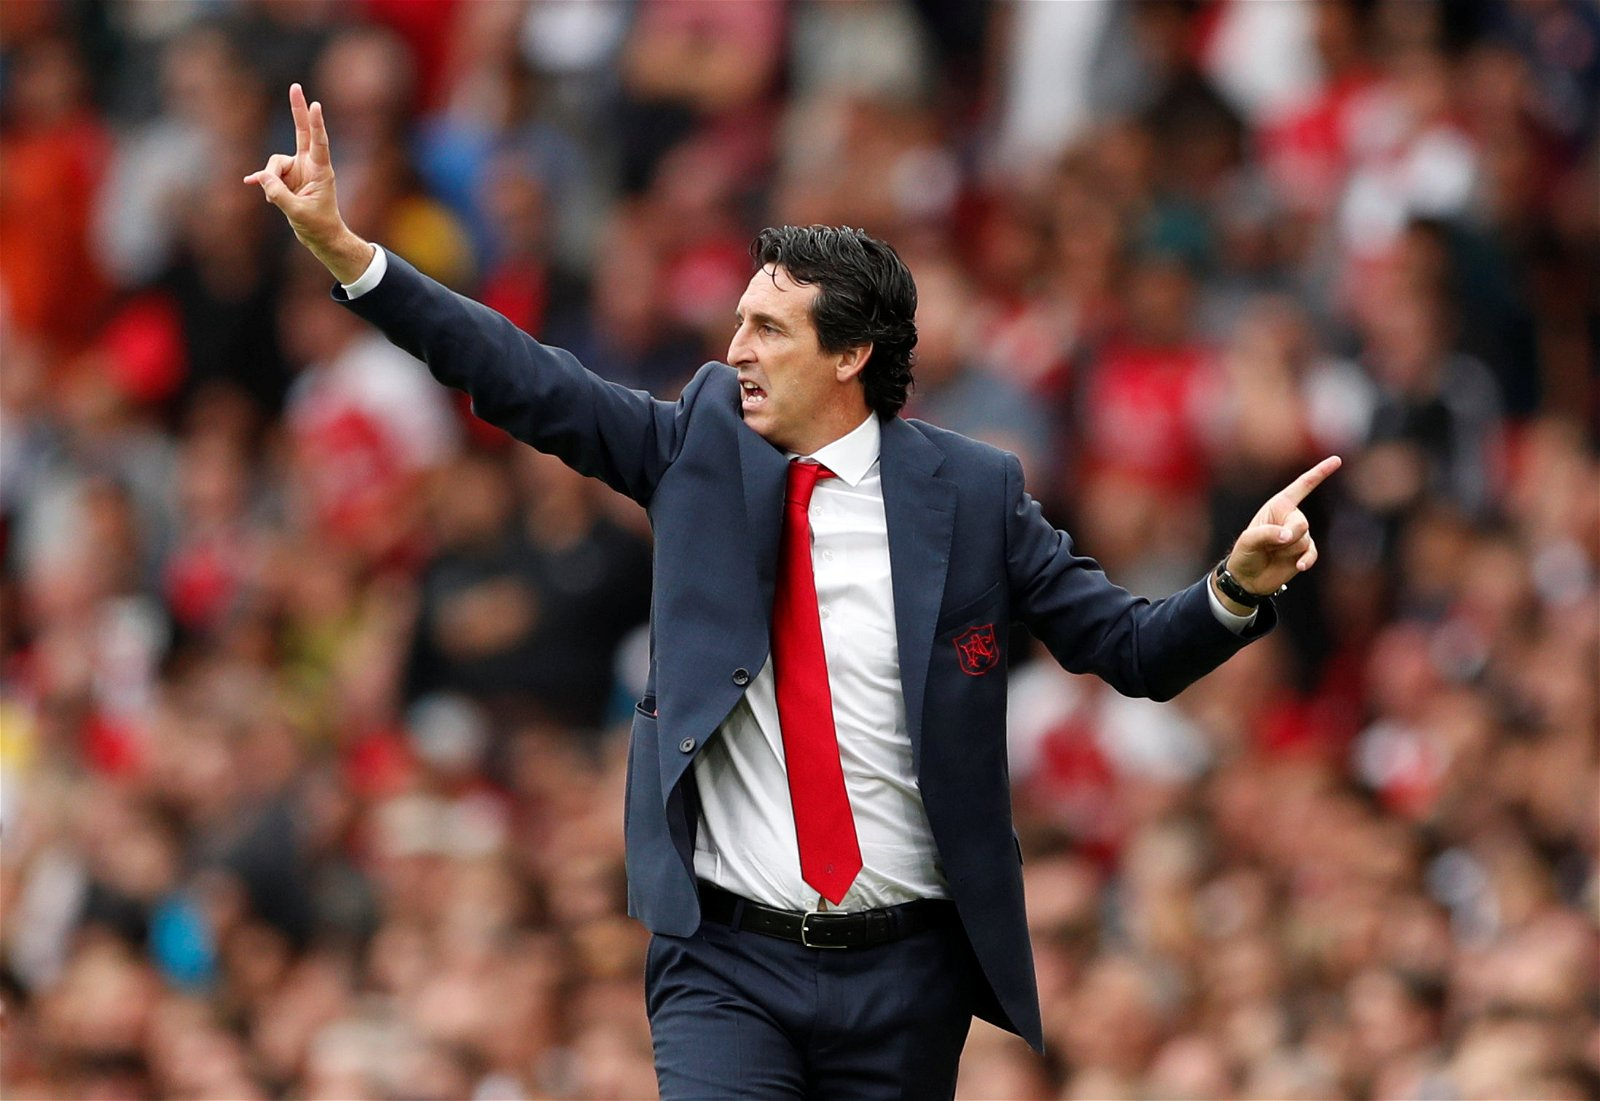 Unai Emery gesticulates from the touchline